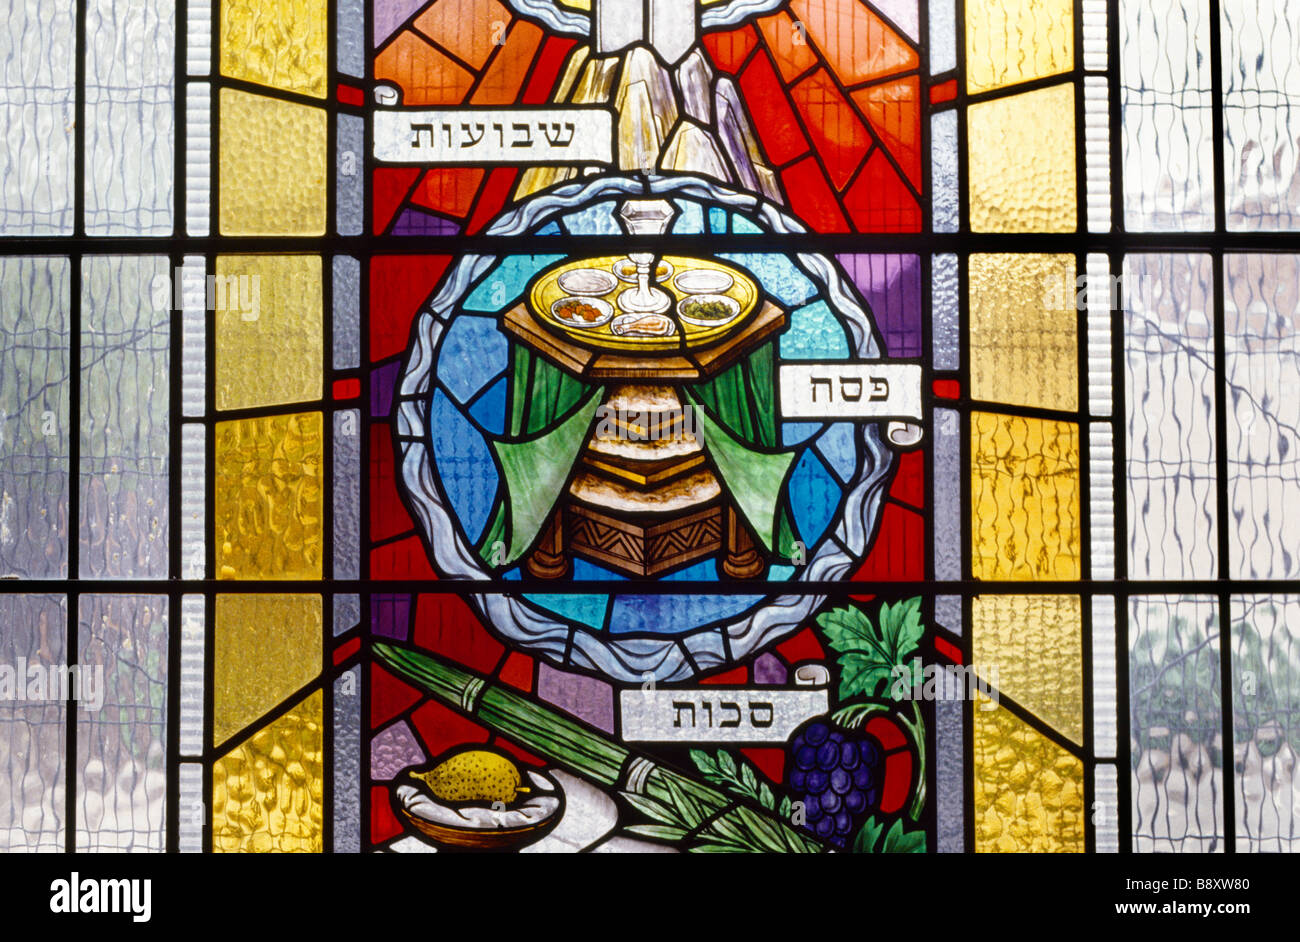 Stained Glass Window Of Passover Table Seder Plate And Cup - Stock Image